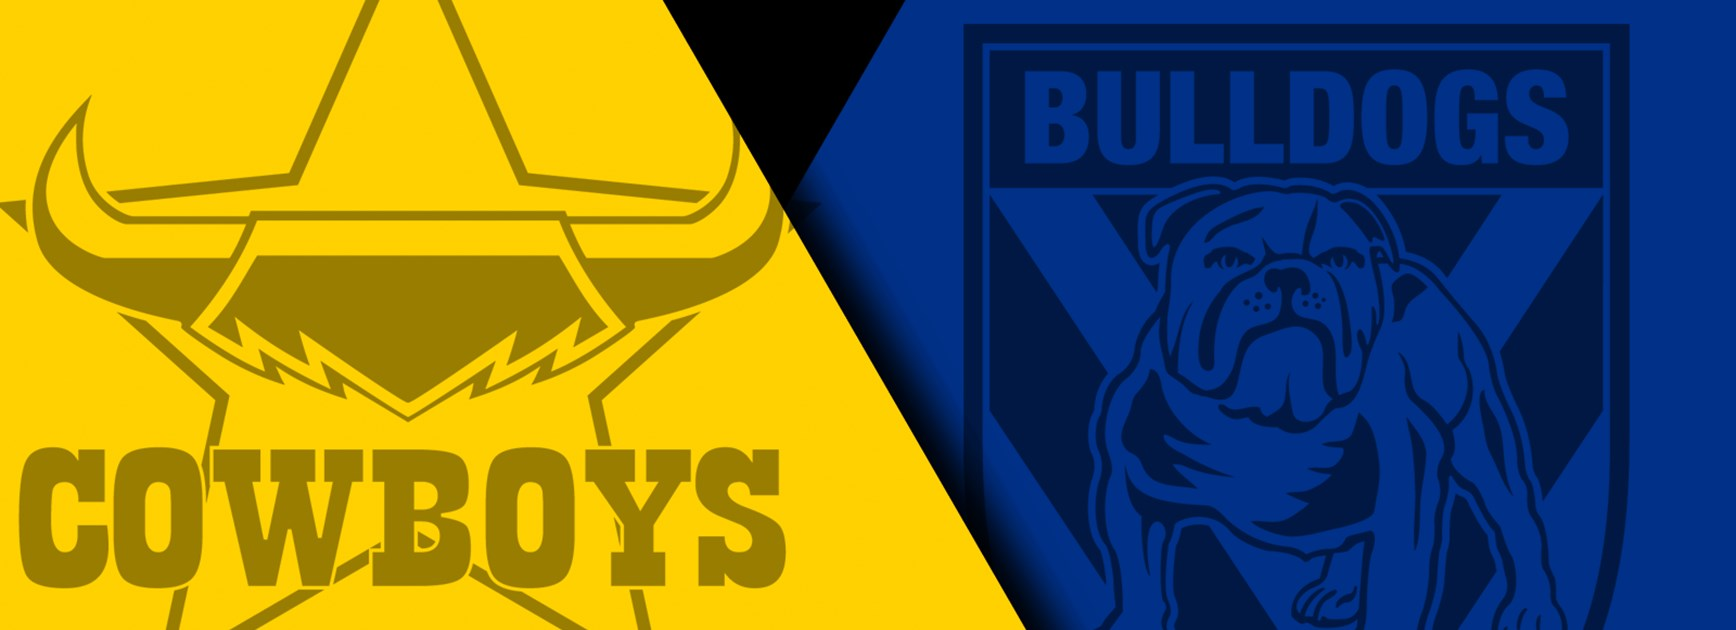 Cowboys Bulldogs preview.